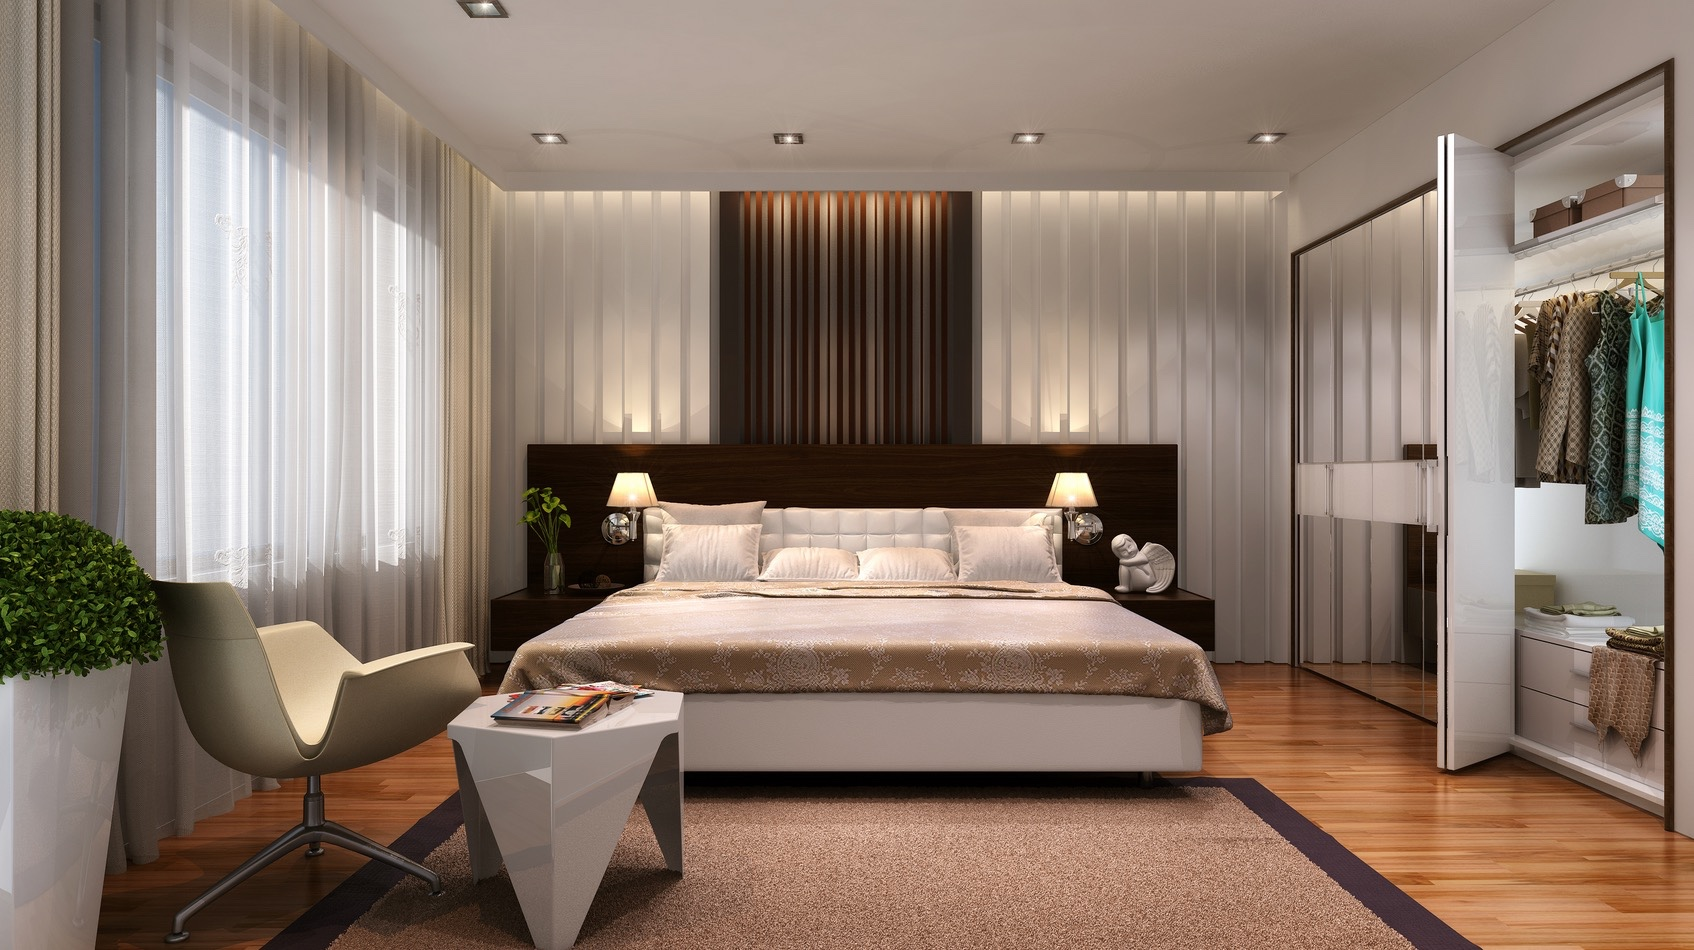 21 cool bedrooms for clean and simple design inspiration for New bedroom designs photos